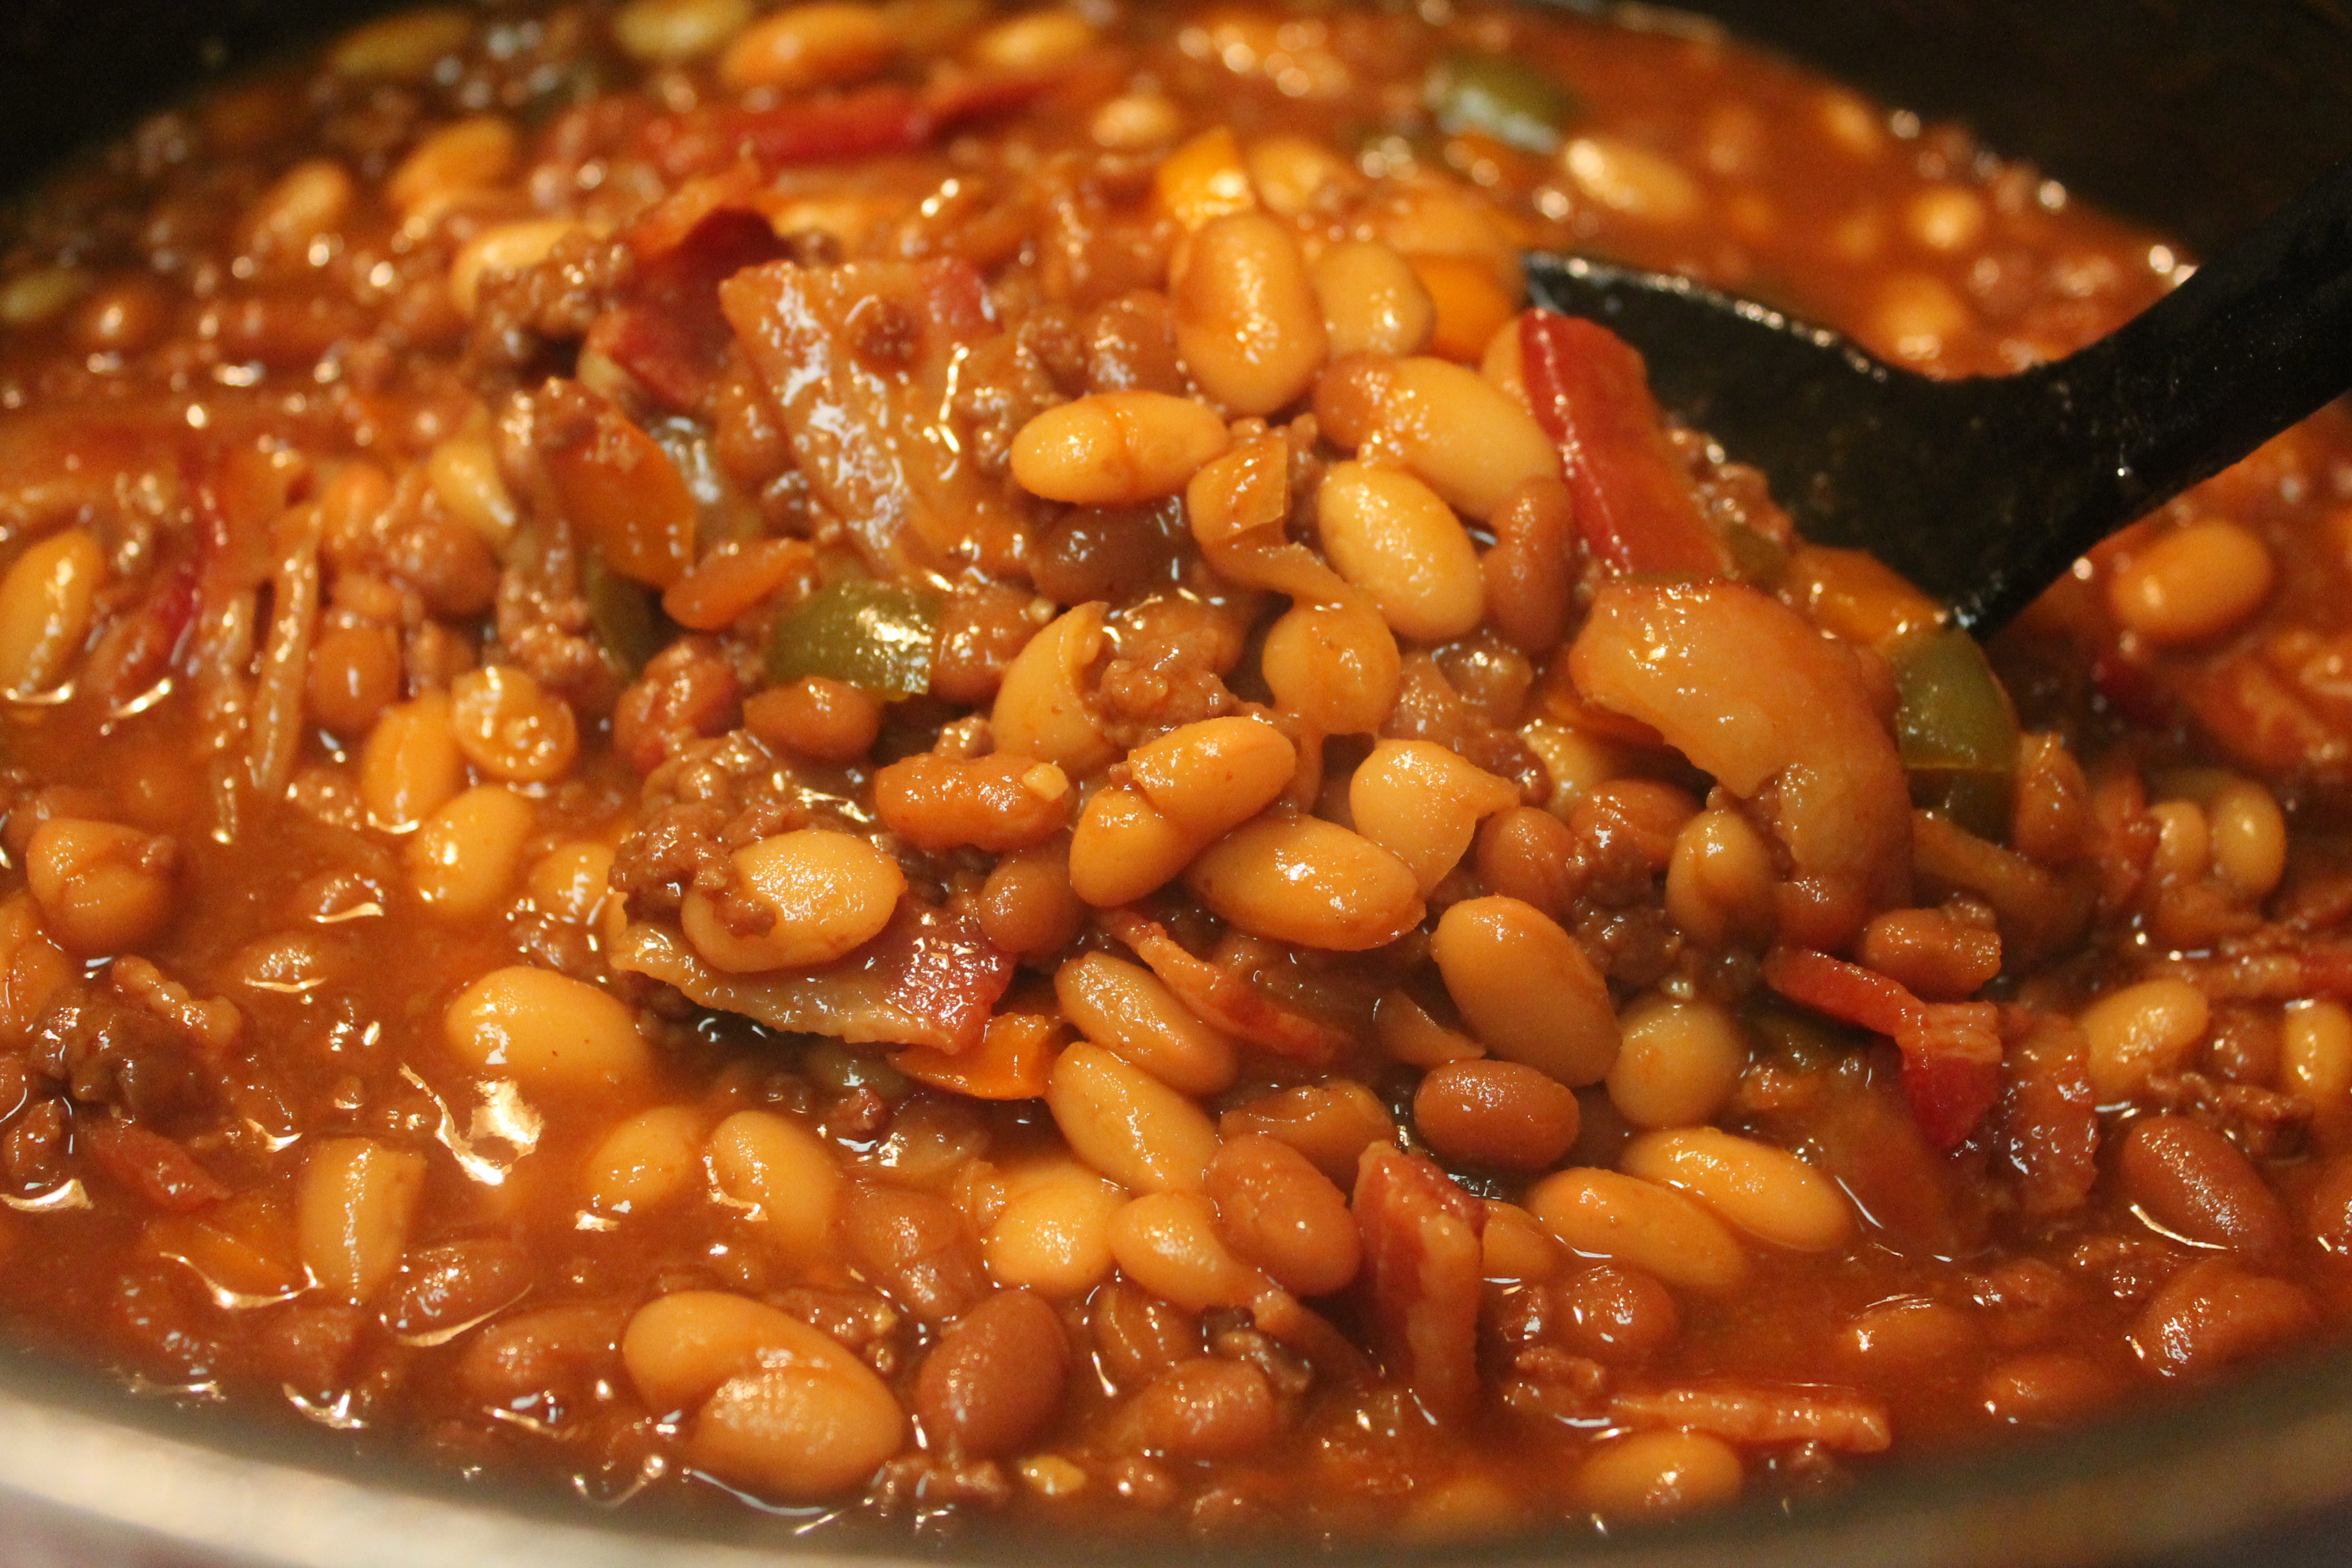 baked bean Looking for baked beans recipes allrecipes has more than 70 trusted baked bean recipes complete with ratings, reviews and cooking tips.